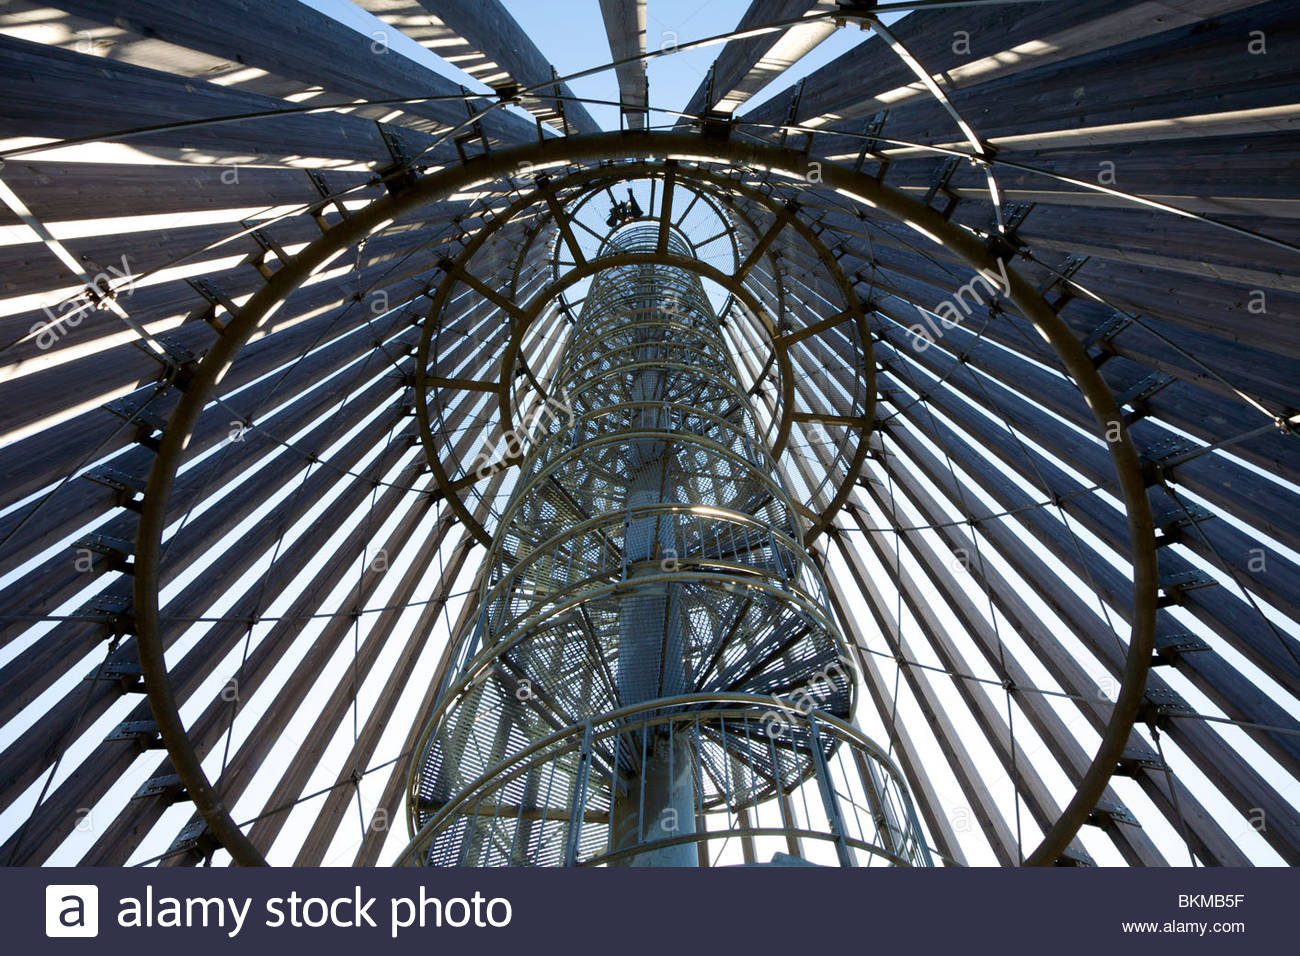 Looking up into the lookout tower (Aussichtsturm) on the Cospuder See, Leipzig, Germany - Stock Image